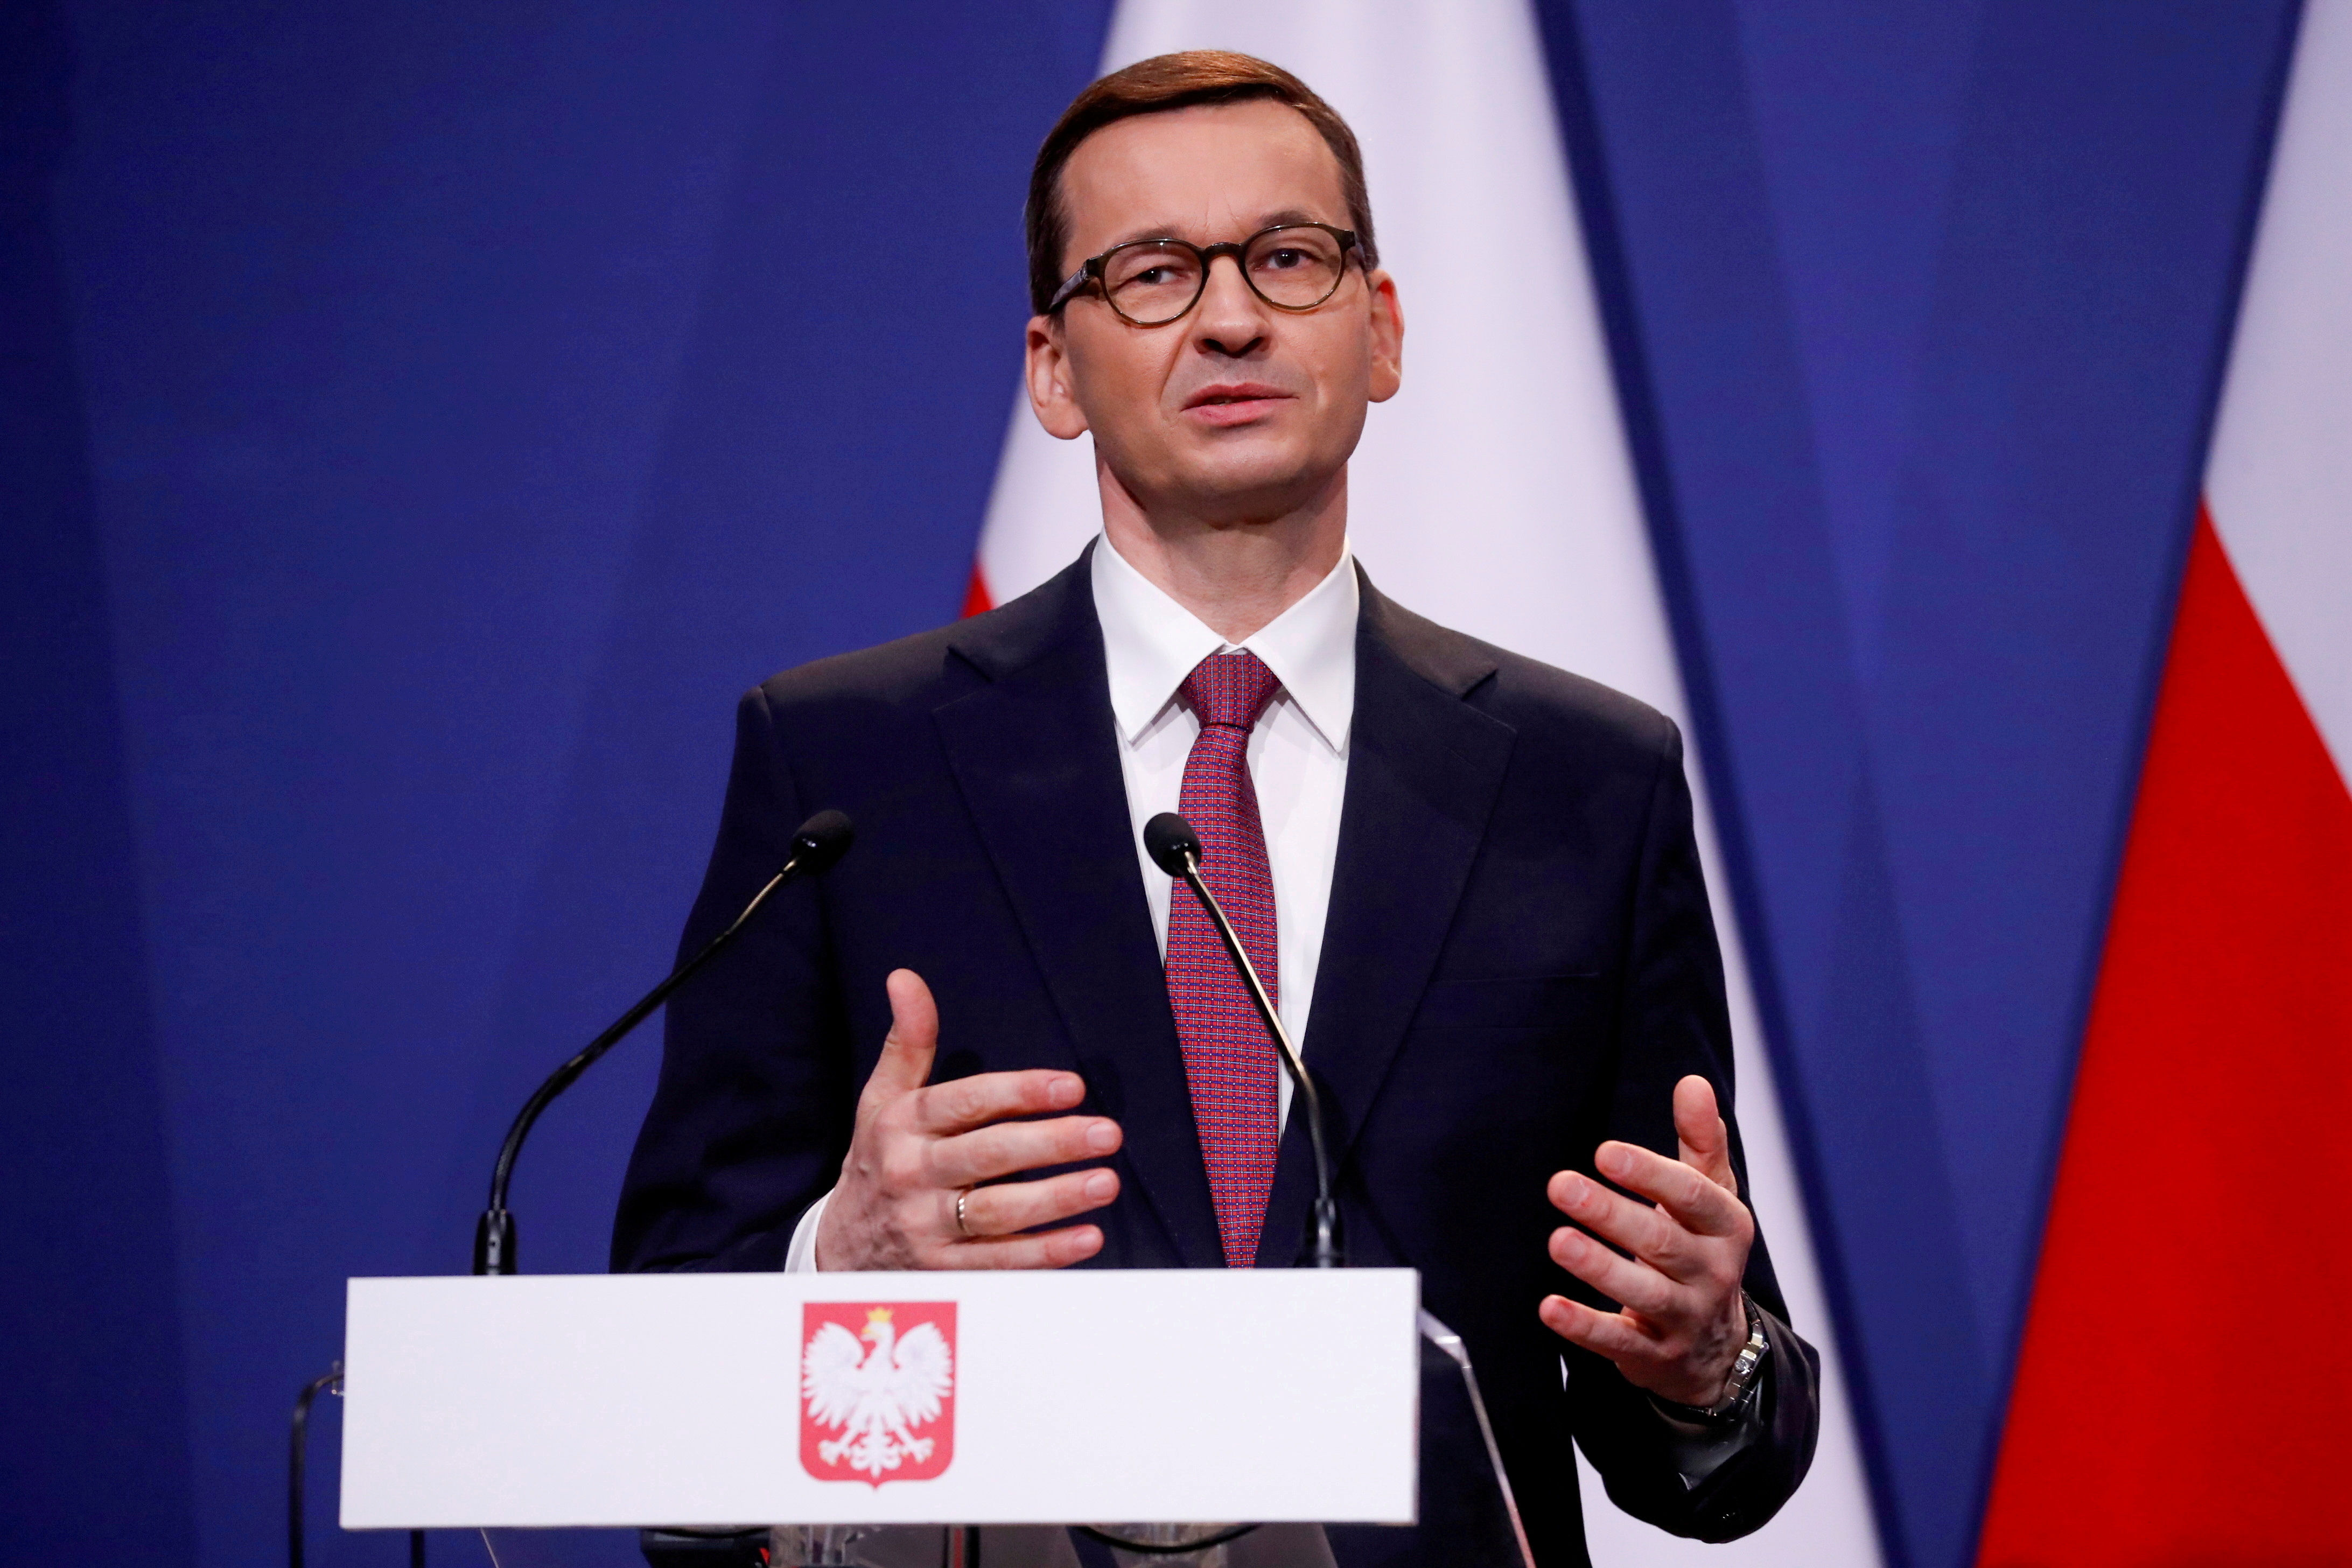 Polish Prime Minister Mateusz Morawiecki gives a statement after meeting with Hungarian Prime Minister Viktor Orban and Italy's League party leader Matteo Salvini in Budapest, Hungary, April 1, 2021. REUTERS/Bernadett Szabo